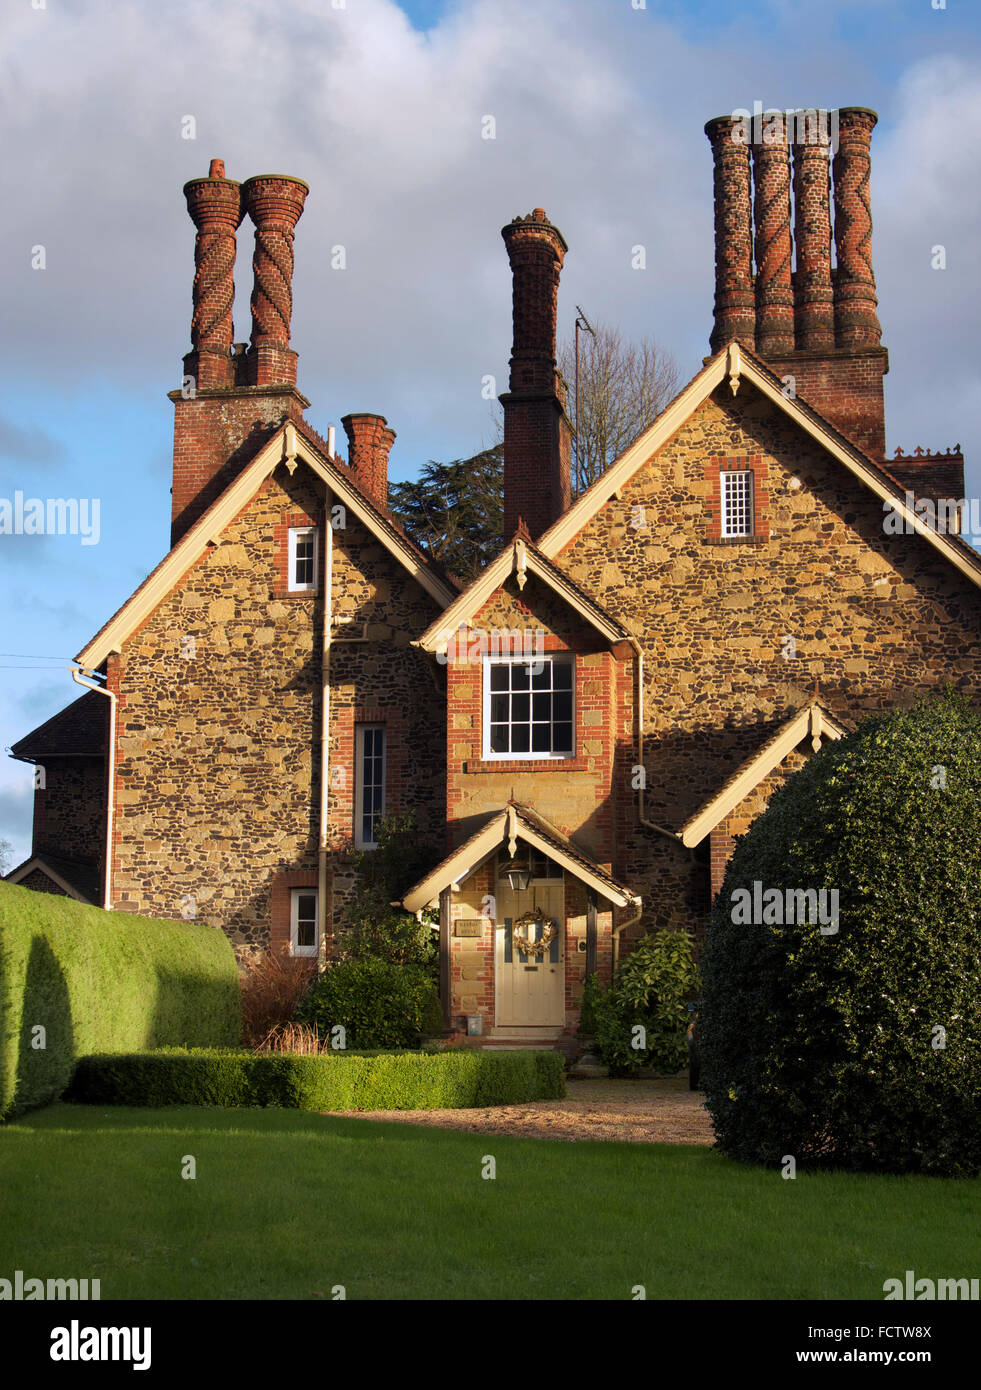 The Old Coach House, in Albury, Surrey, UK with the famous Pugin chimneys - 19th century copies of Tudor designs. - Stock Image